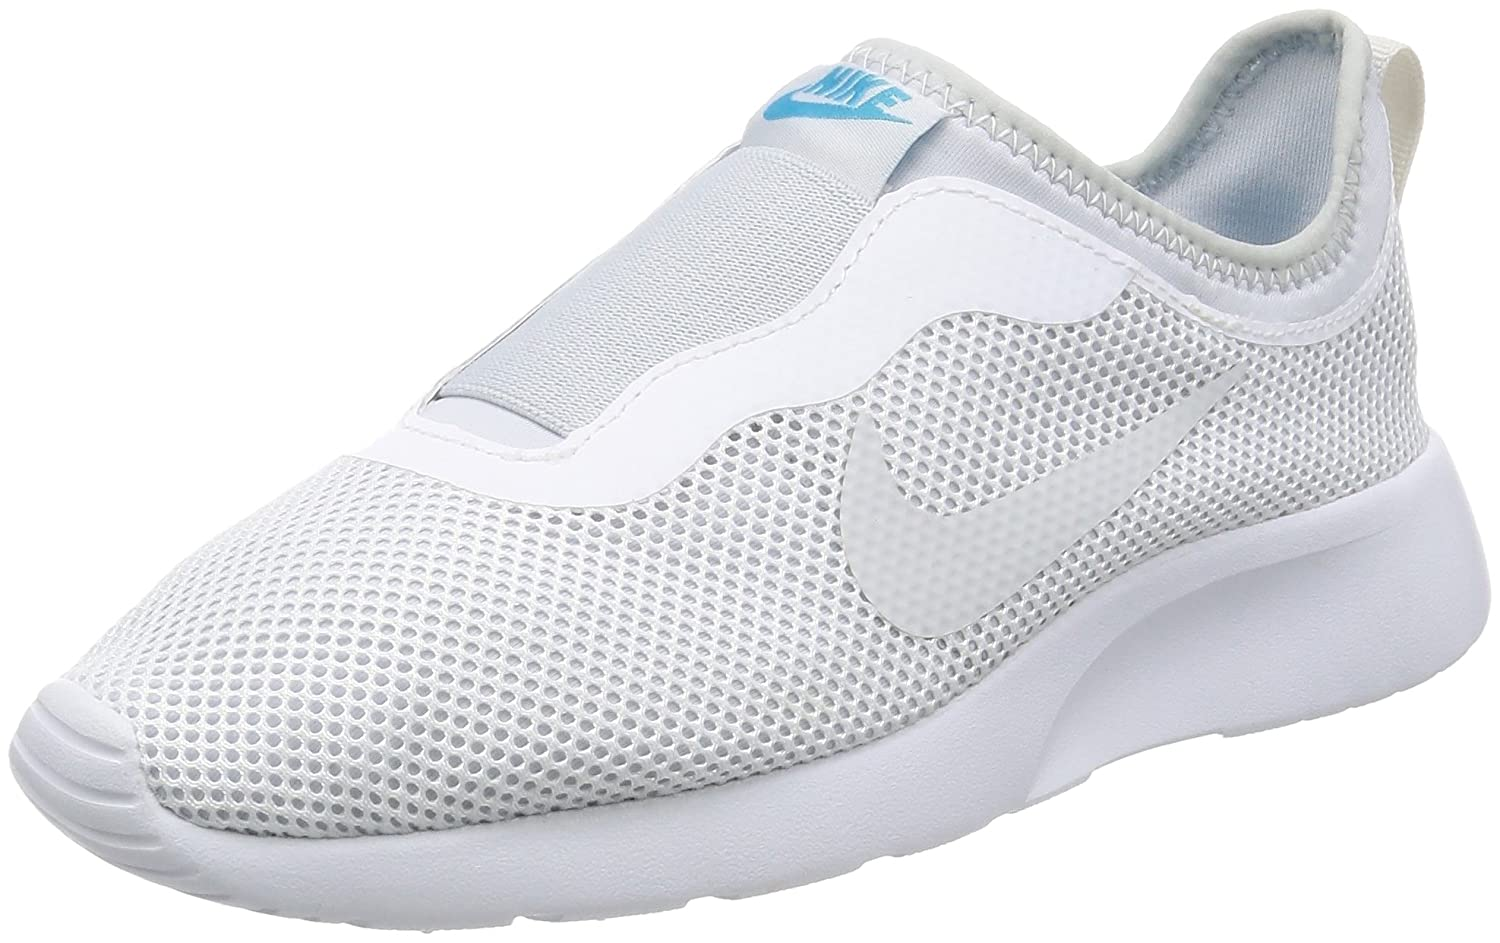 NIKE Women's Tanjun Slip-On Shoe B01K35U1W8 7.5 B(M) US|White/Pure Platinum/Chlorine Blue